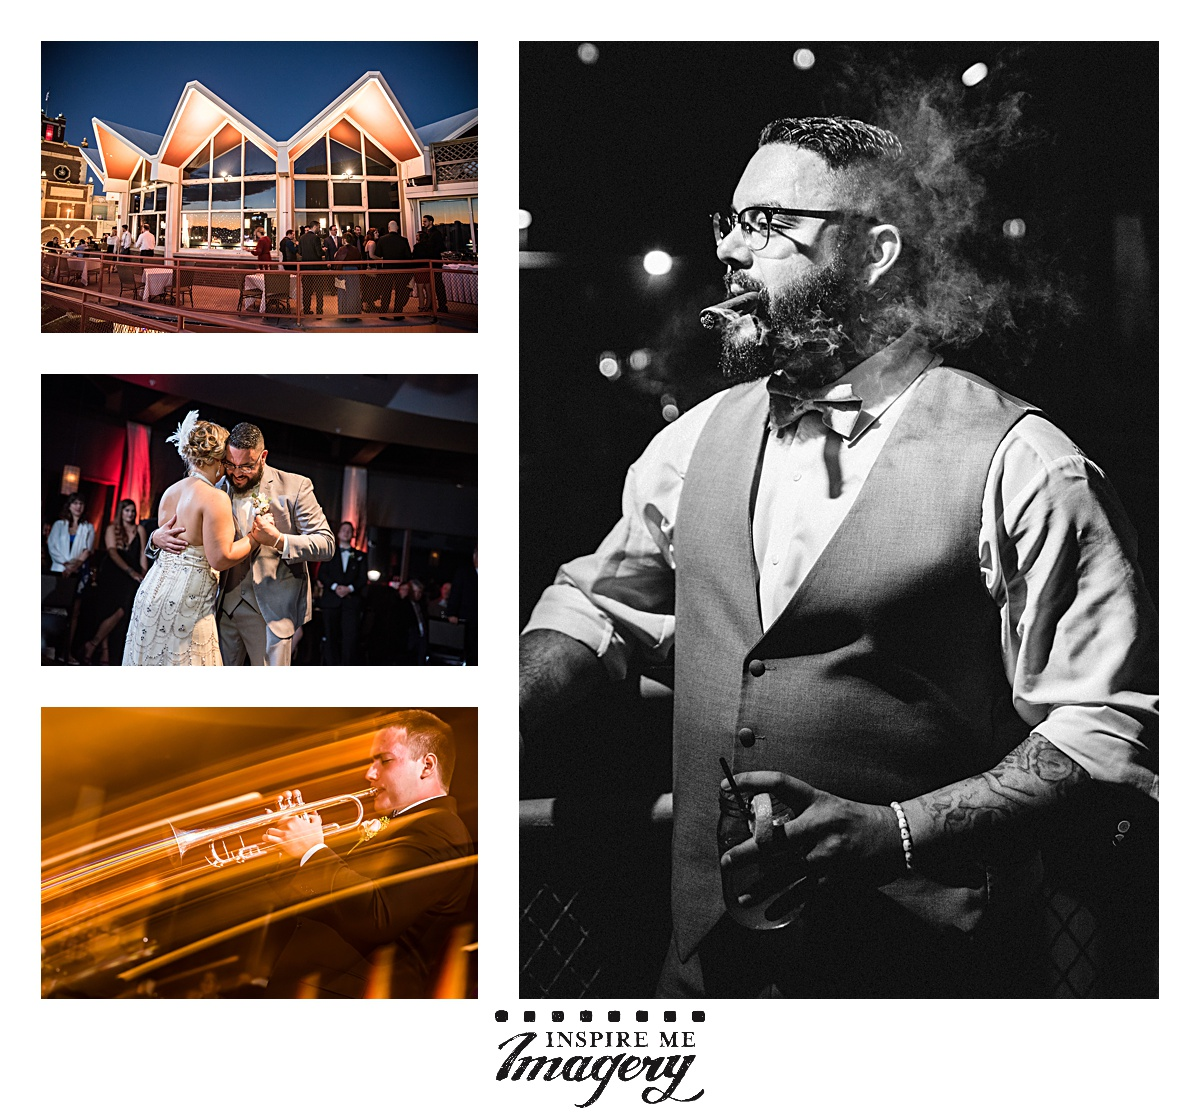 The wedding reception was at a favorite venue of ours,McLoone's Supper Club in Asbury Park.